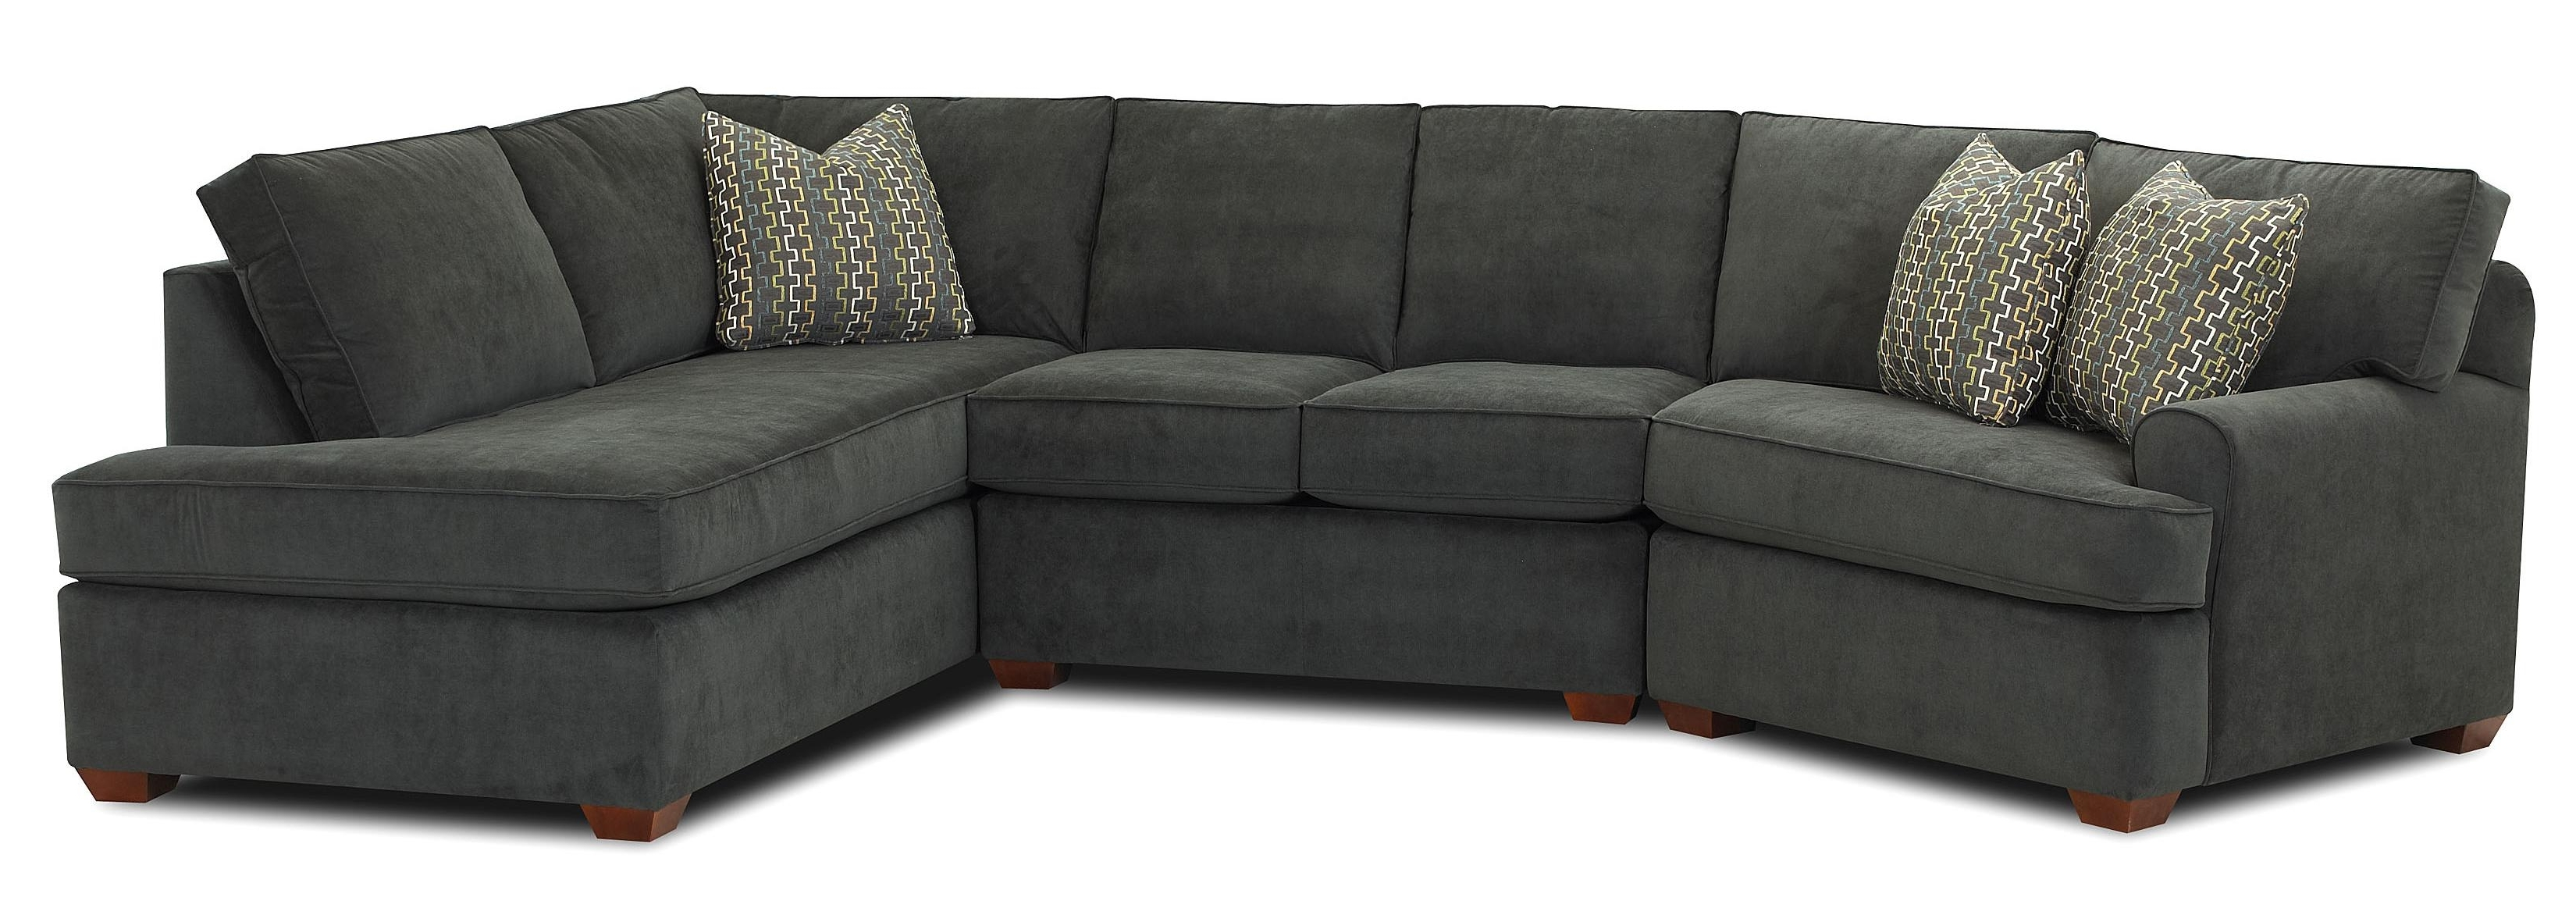 Most Up To Date Dallas Sectional Sofa – Fjellkjeden In Dallas Sectional Sofas (View 17 of 20)